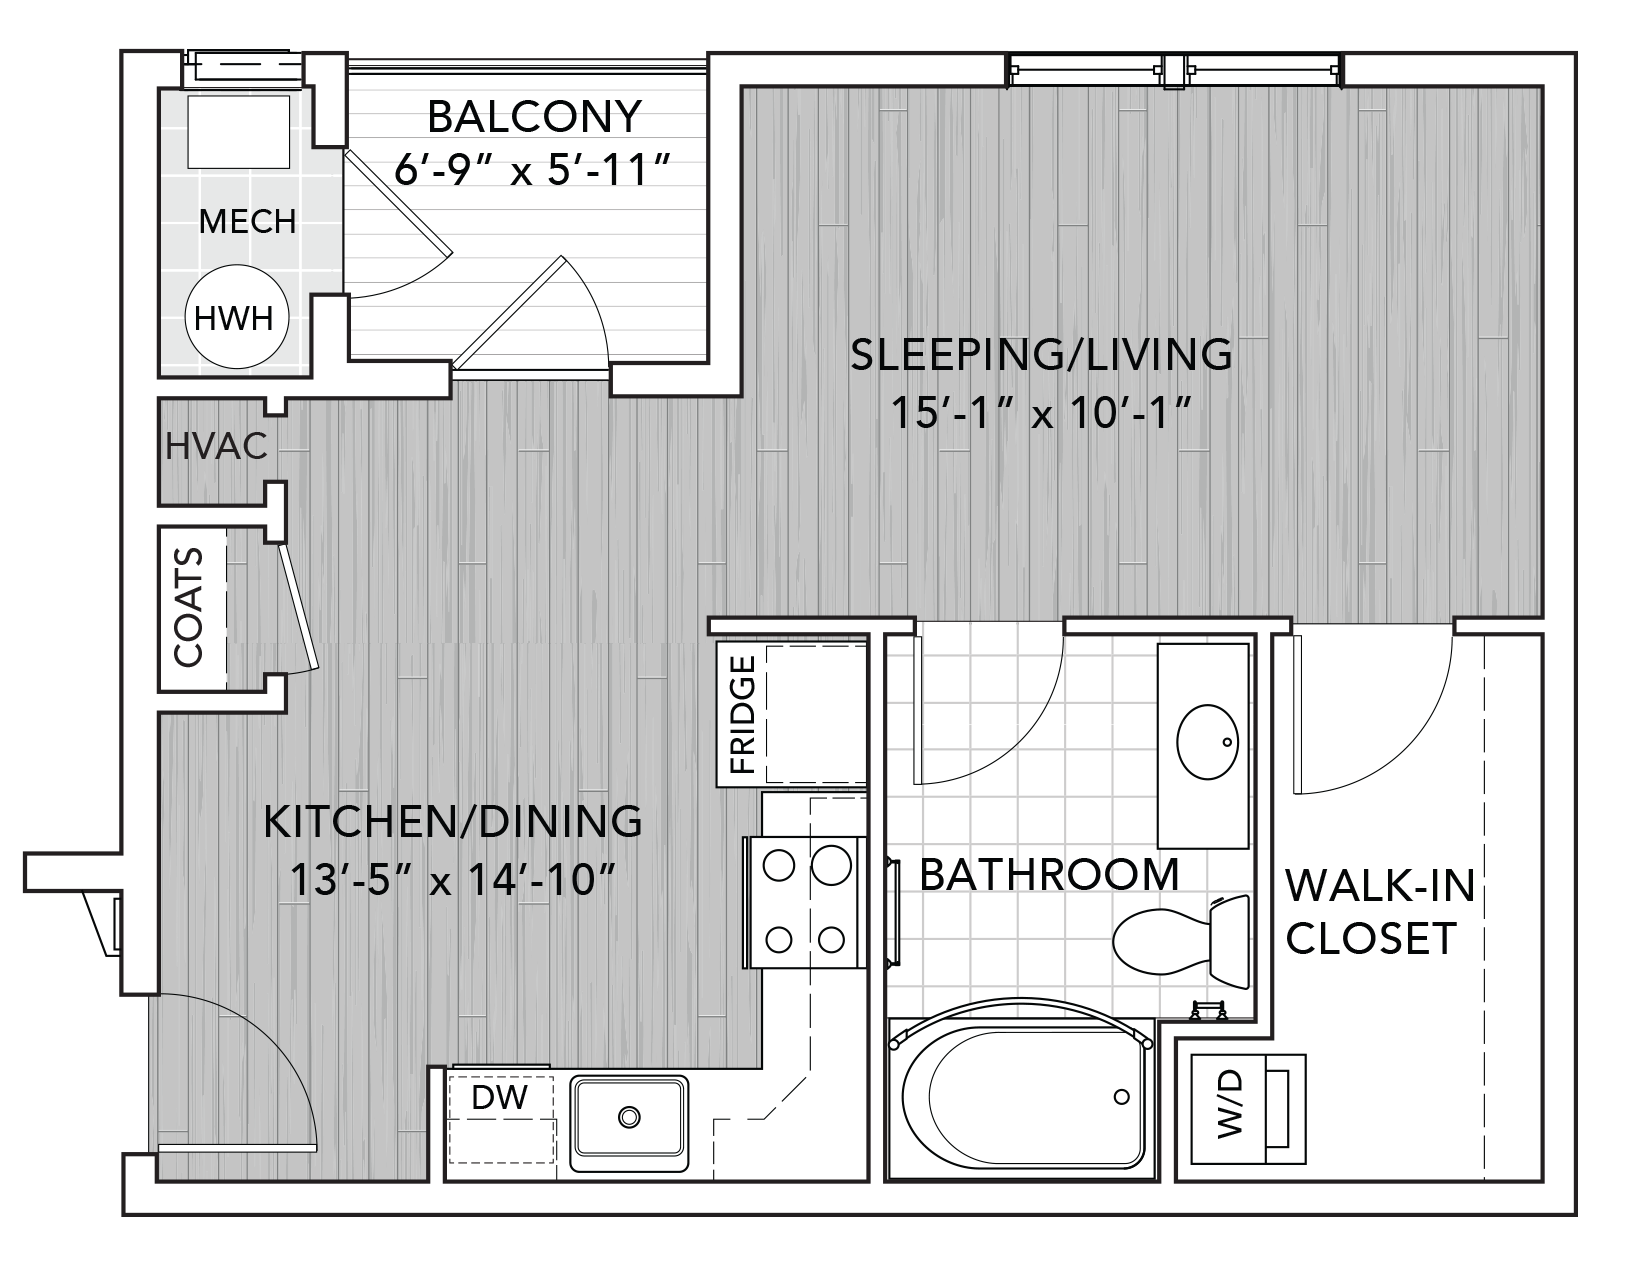 P0655013 parksquare d1 553 2 floorplan